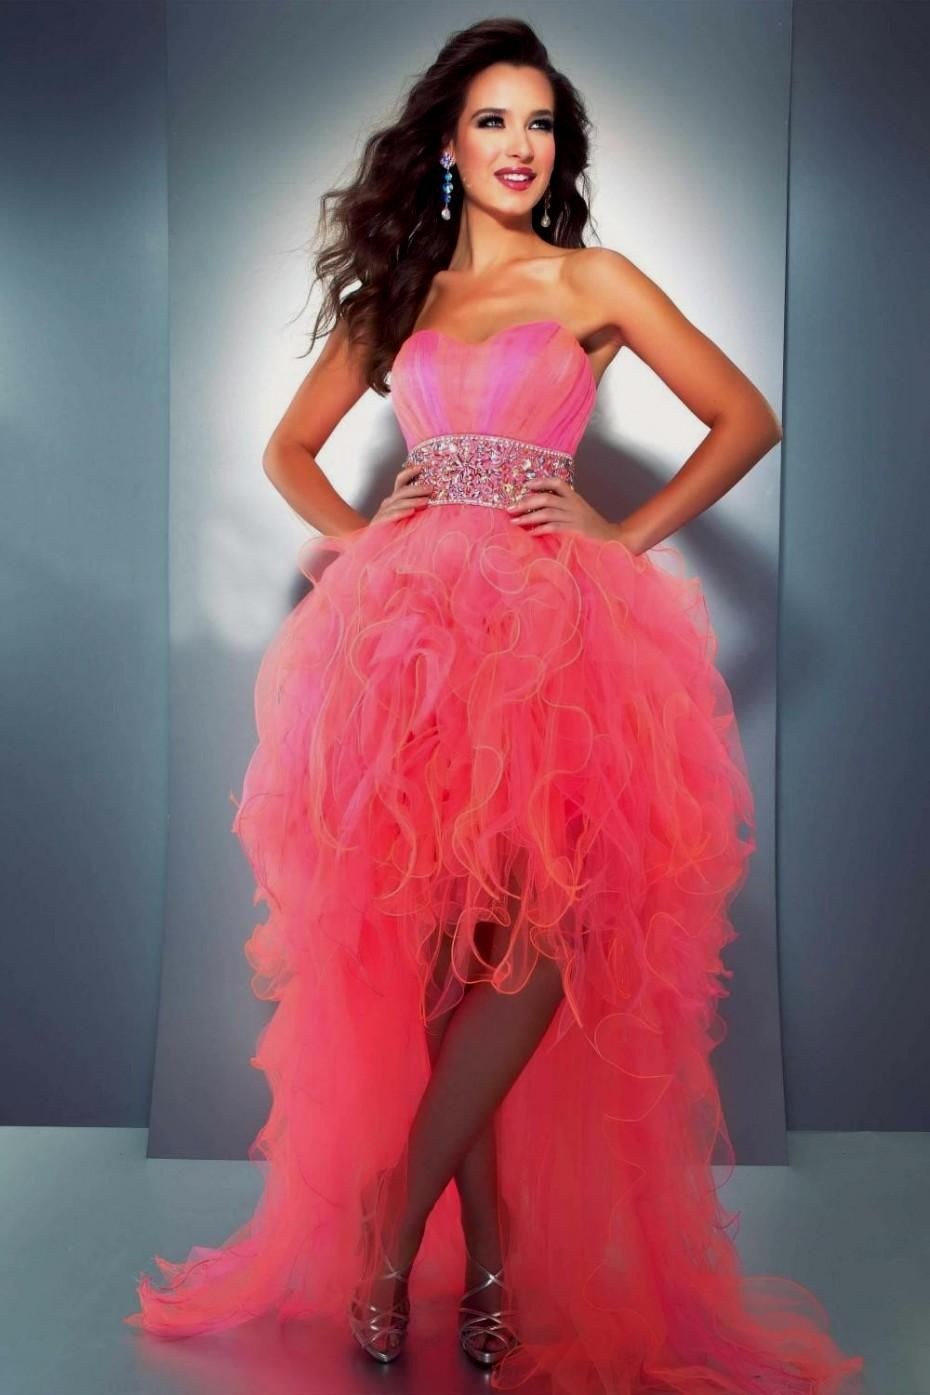 a2e8bee2d8a Quinceanera Dresses Neon Coral Neon Coral Quinceanera Dresses ...